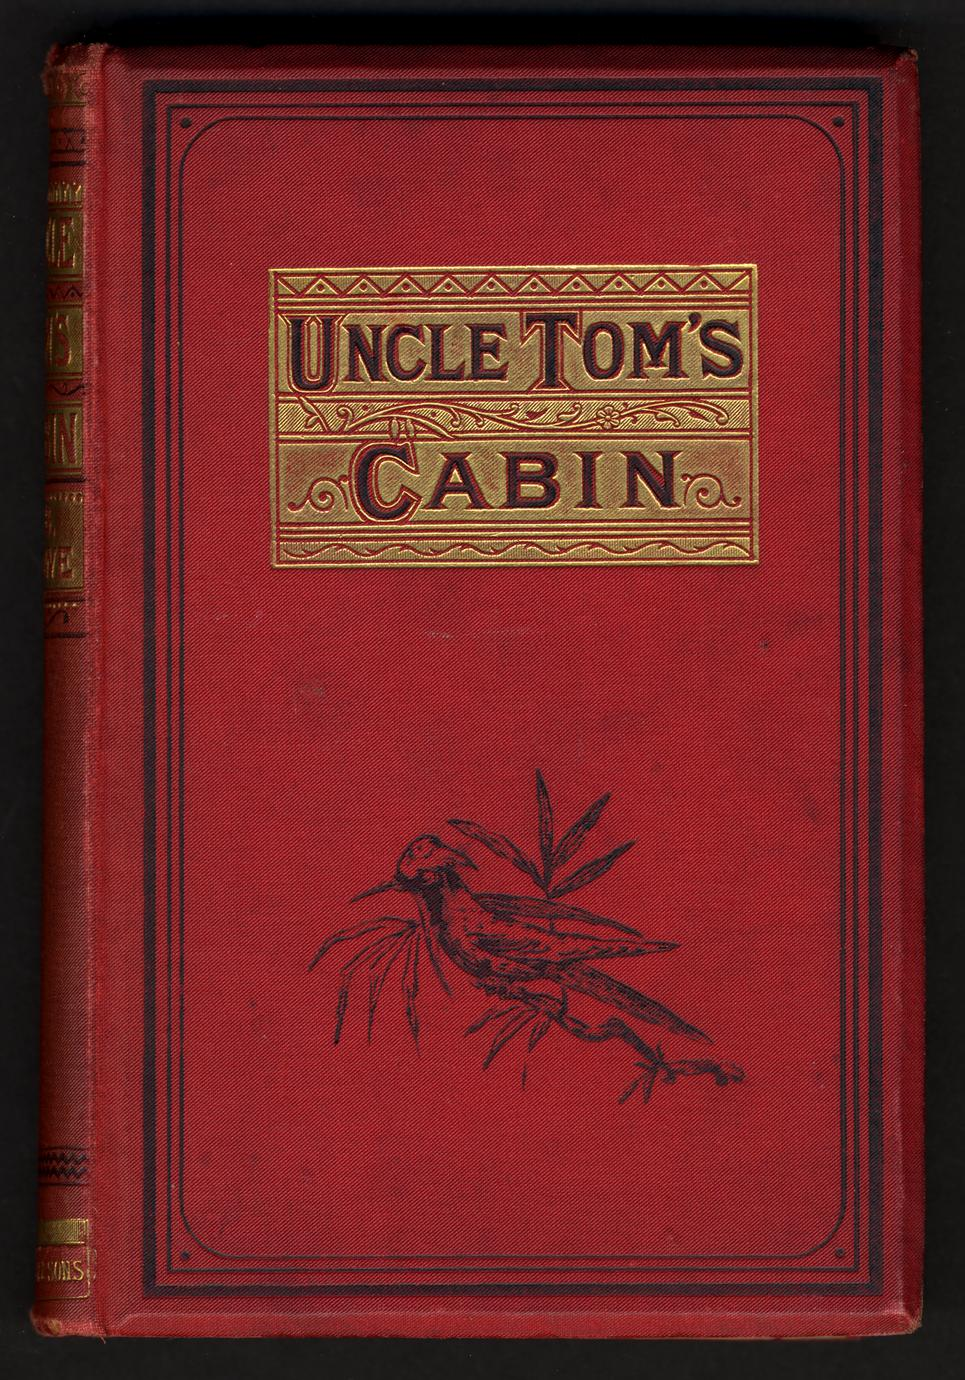 Uncle Tom's cabin; or, Negro life as it was in America (1 of 4)